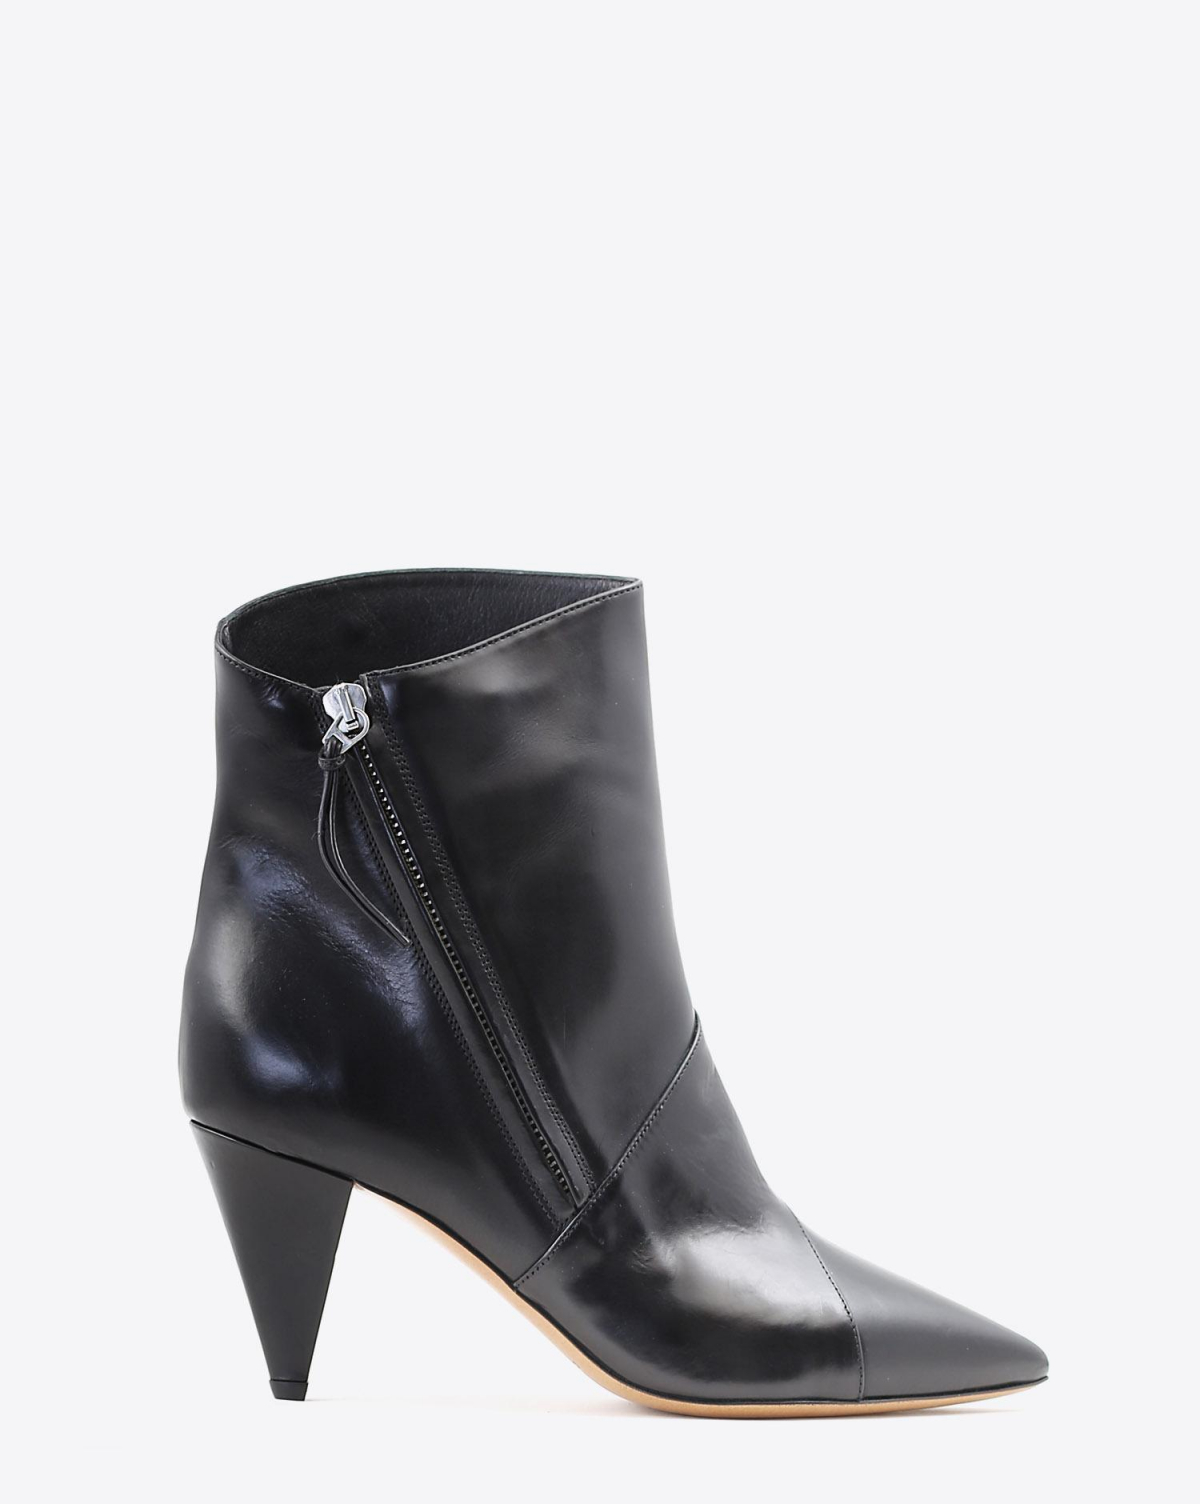 Isabel Marant Chaussures Boots LATTS - Black